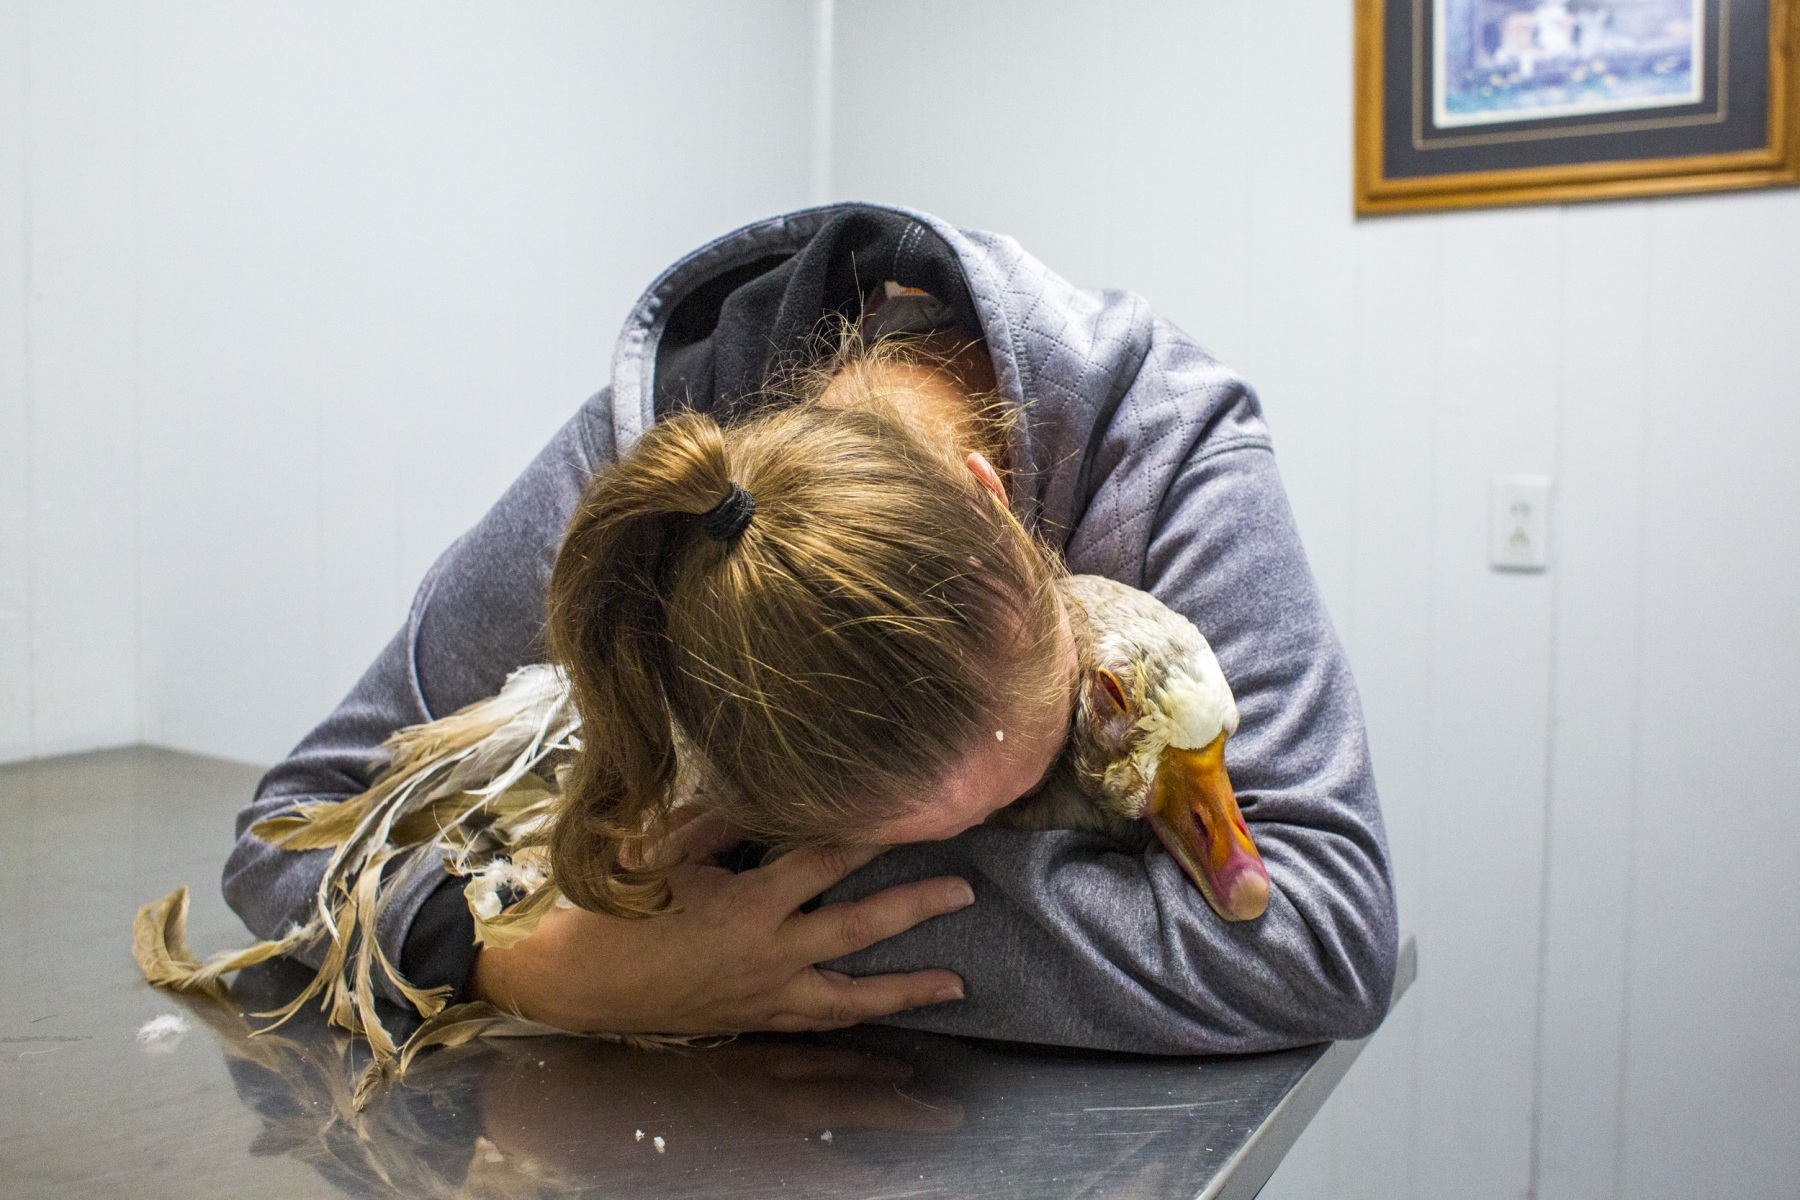 """Denise Andrews cries over her pet goose, Mick, before he is put down at the Harrison County Veterinary Clinic in Cynthiana, Ky. on October 31, 2019. Just minutes before, Mick was diagnosed with a malignant tumor on his face. """"I hate to put anything down,"""" Denise says."""